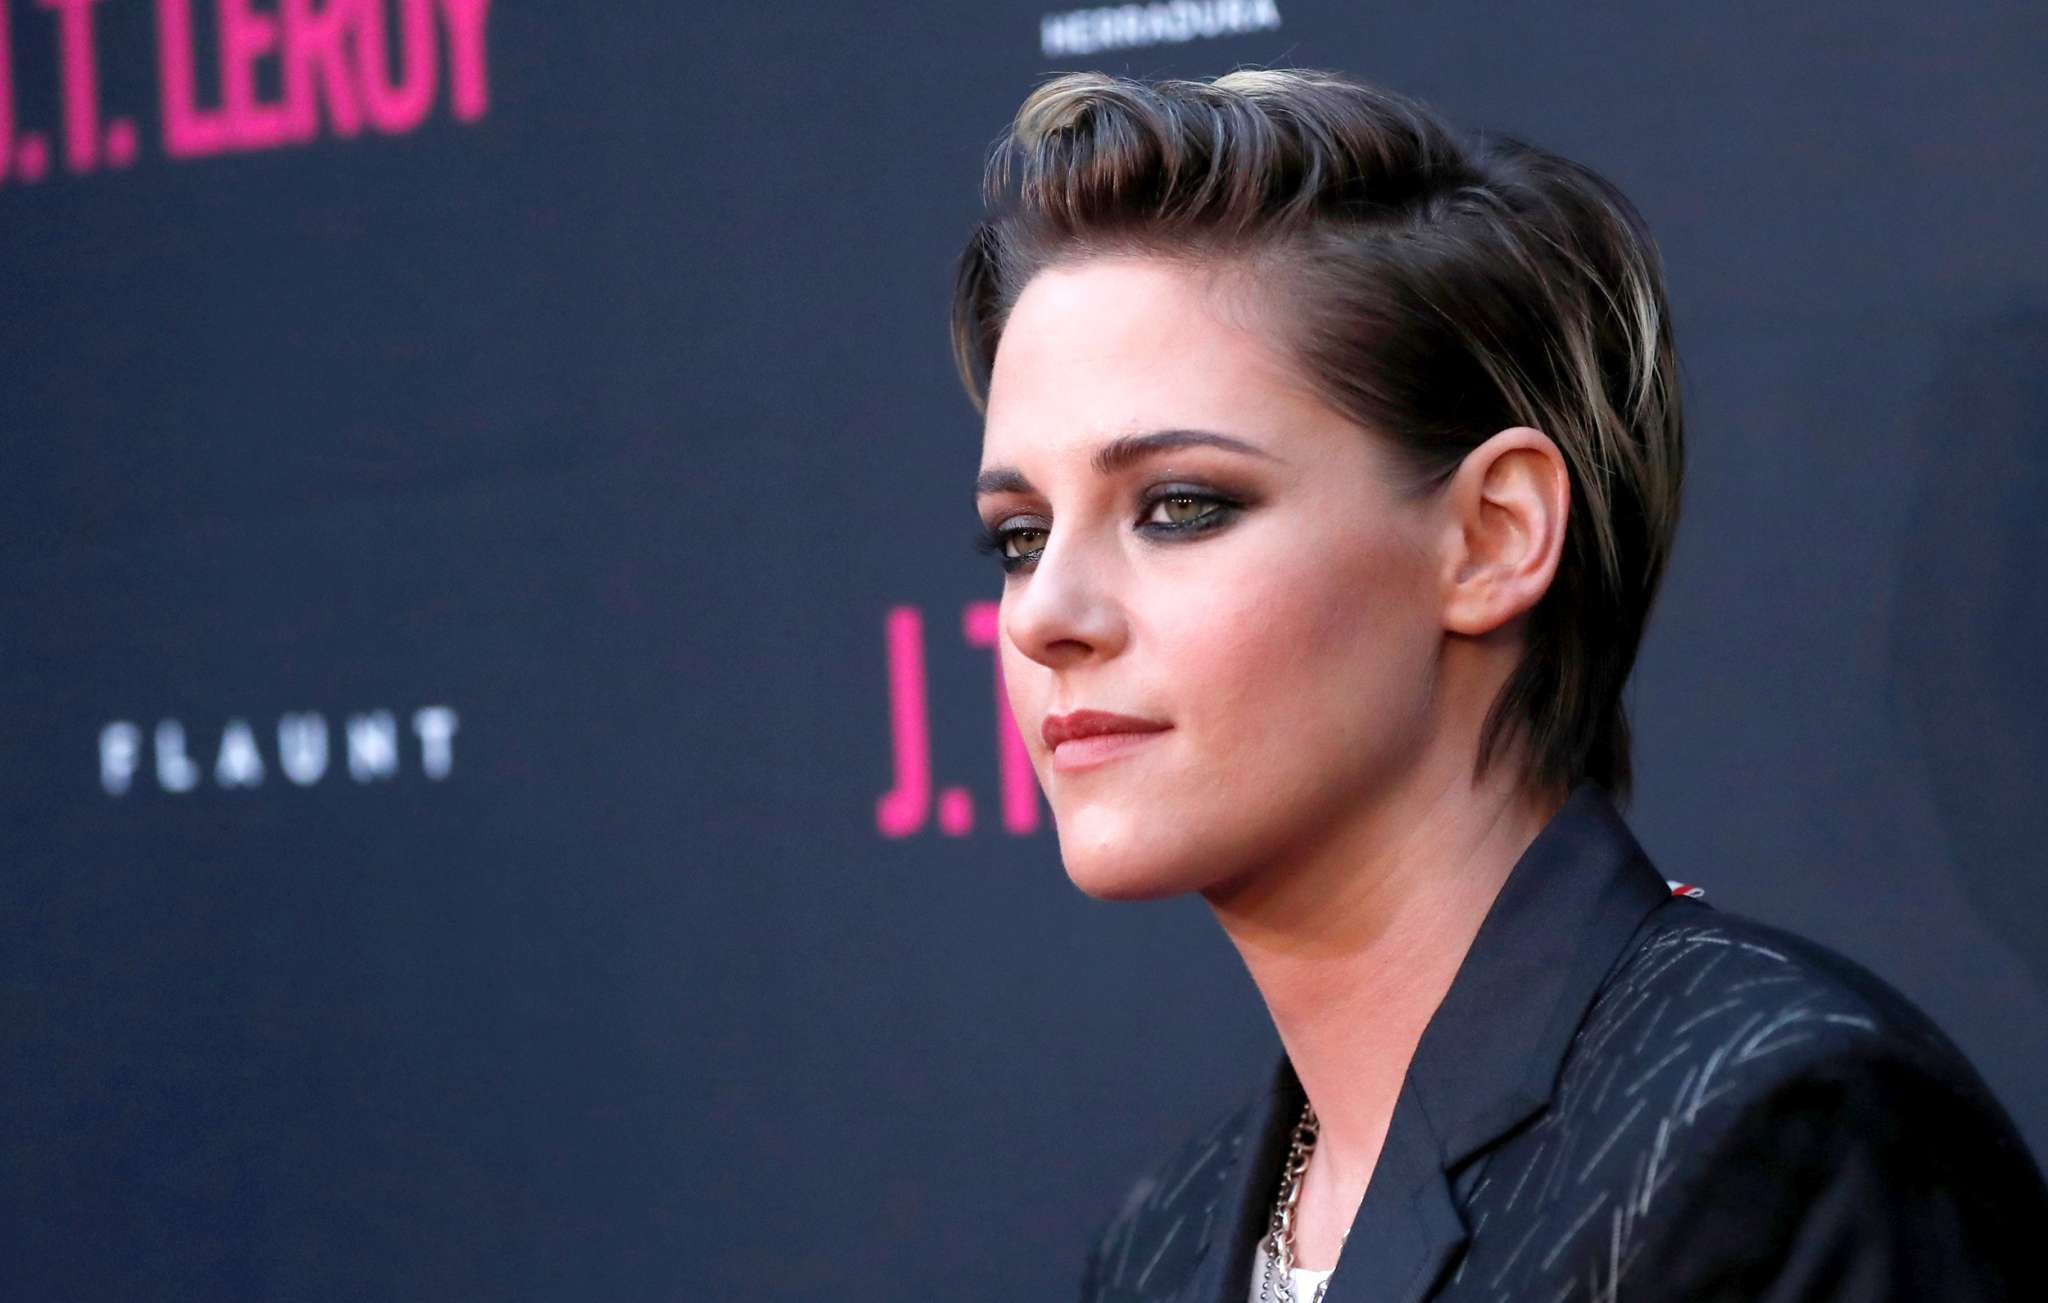 kristen-stewart-explains-why-she-came-out-after-twilight